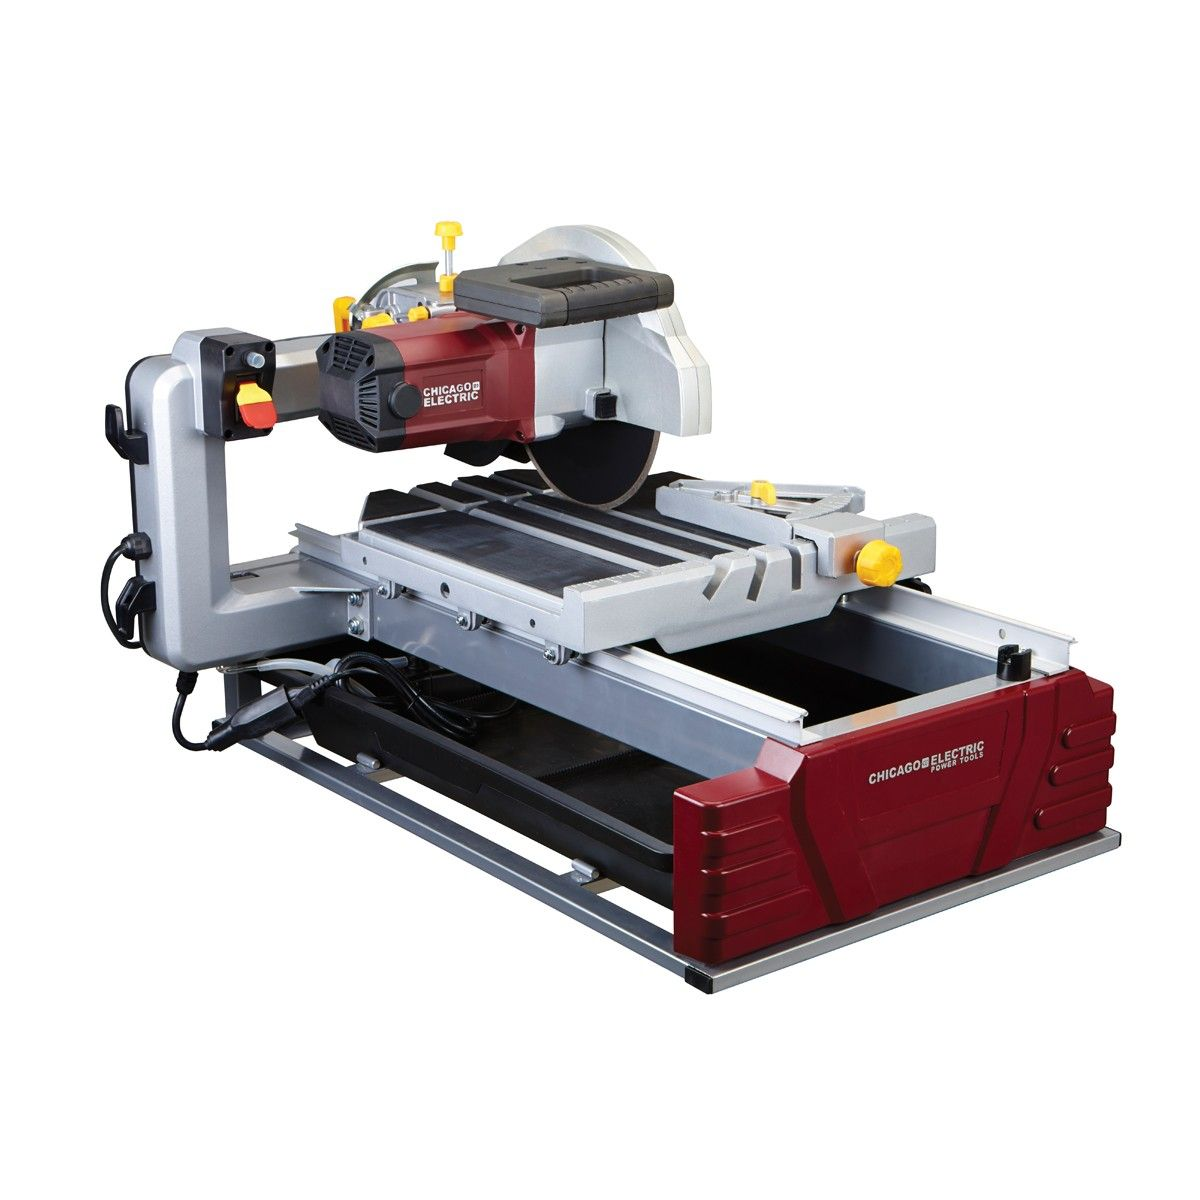 10 In 2 5 Hp Tile Brick Saw Brick Saw Diy Table Saw Table Saw